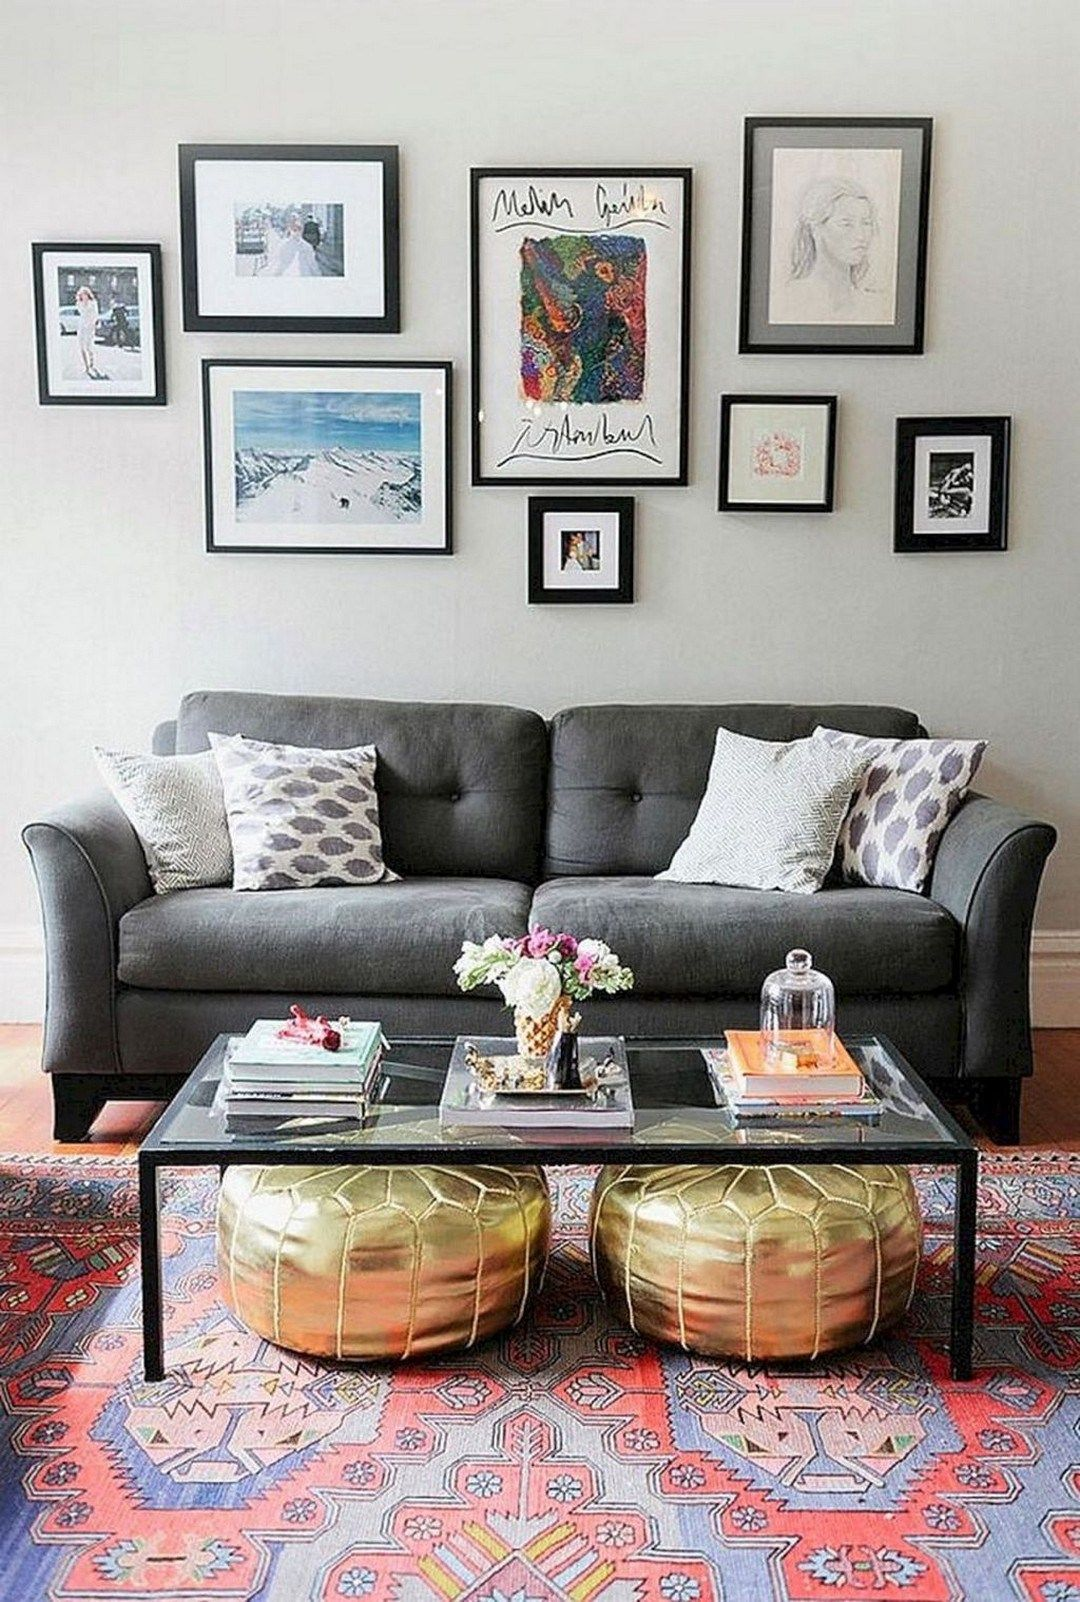 cozy small apartment decorating ideas on a budget 7 on stunning minimalist apartment décor ideas home decor for your small apartment id=74192